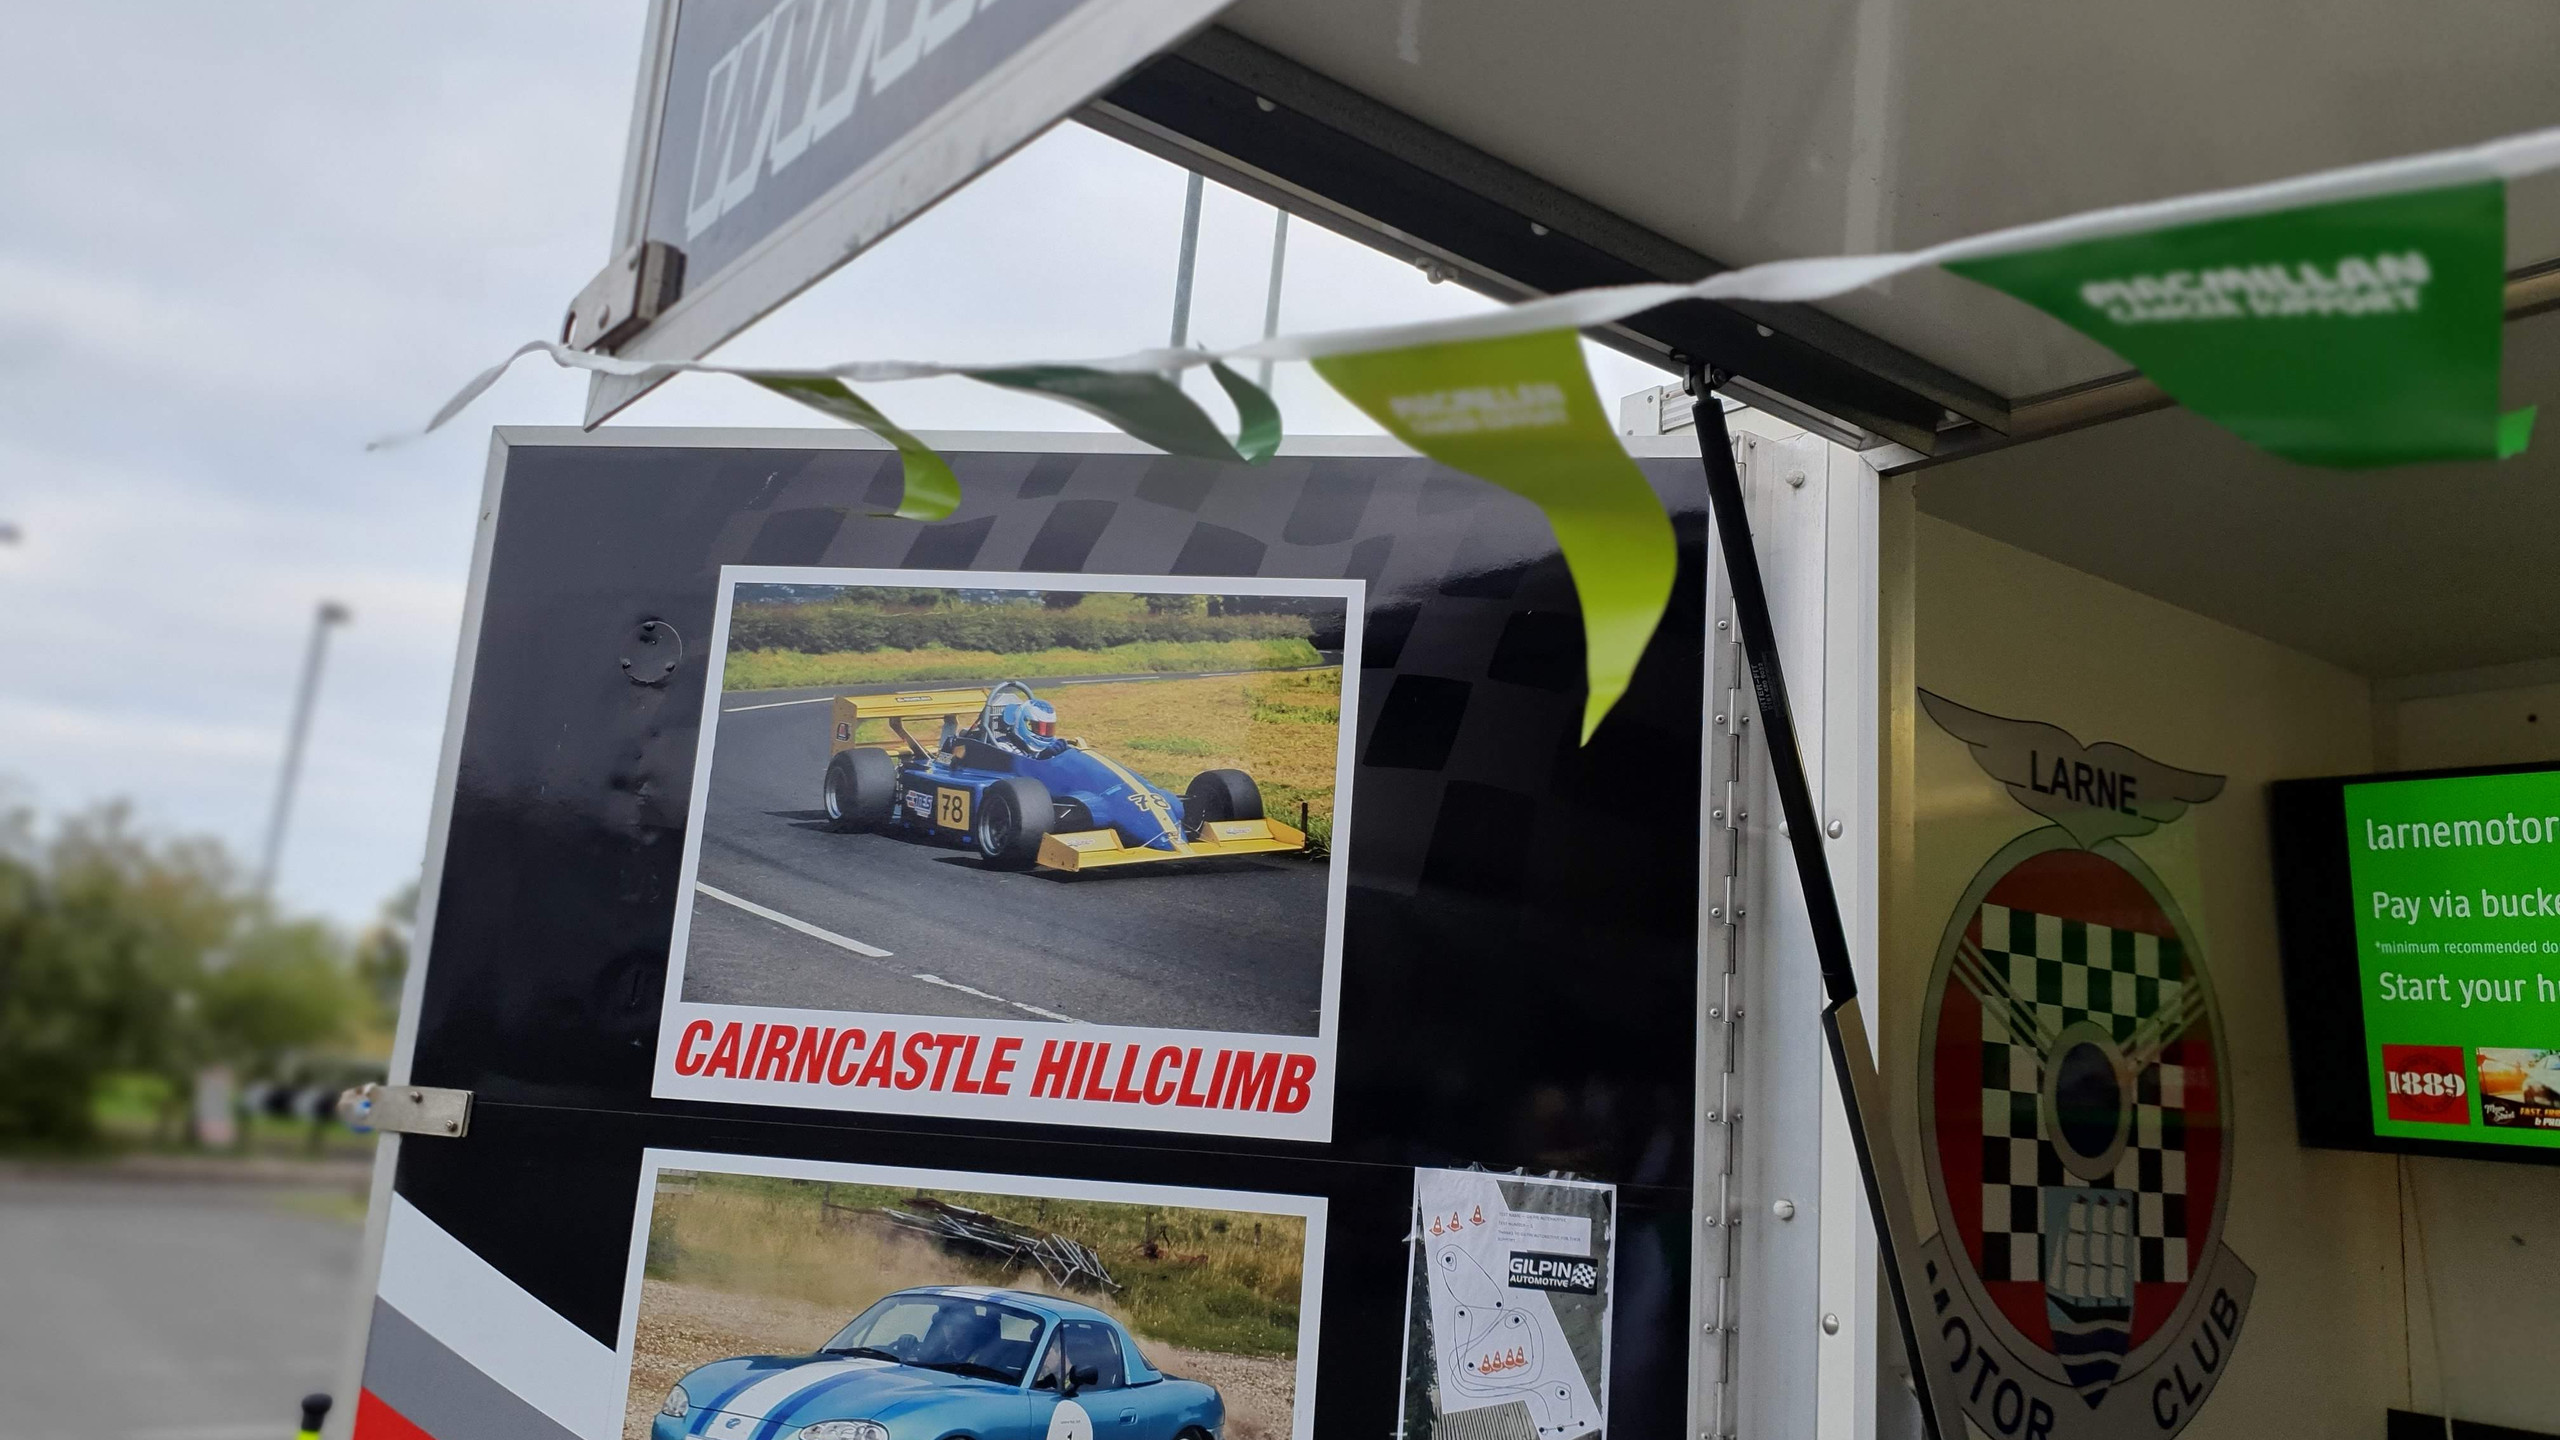 Macmillan Cancer Support provided the items to decorate our club trailer